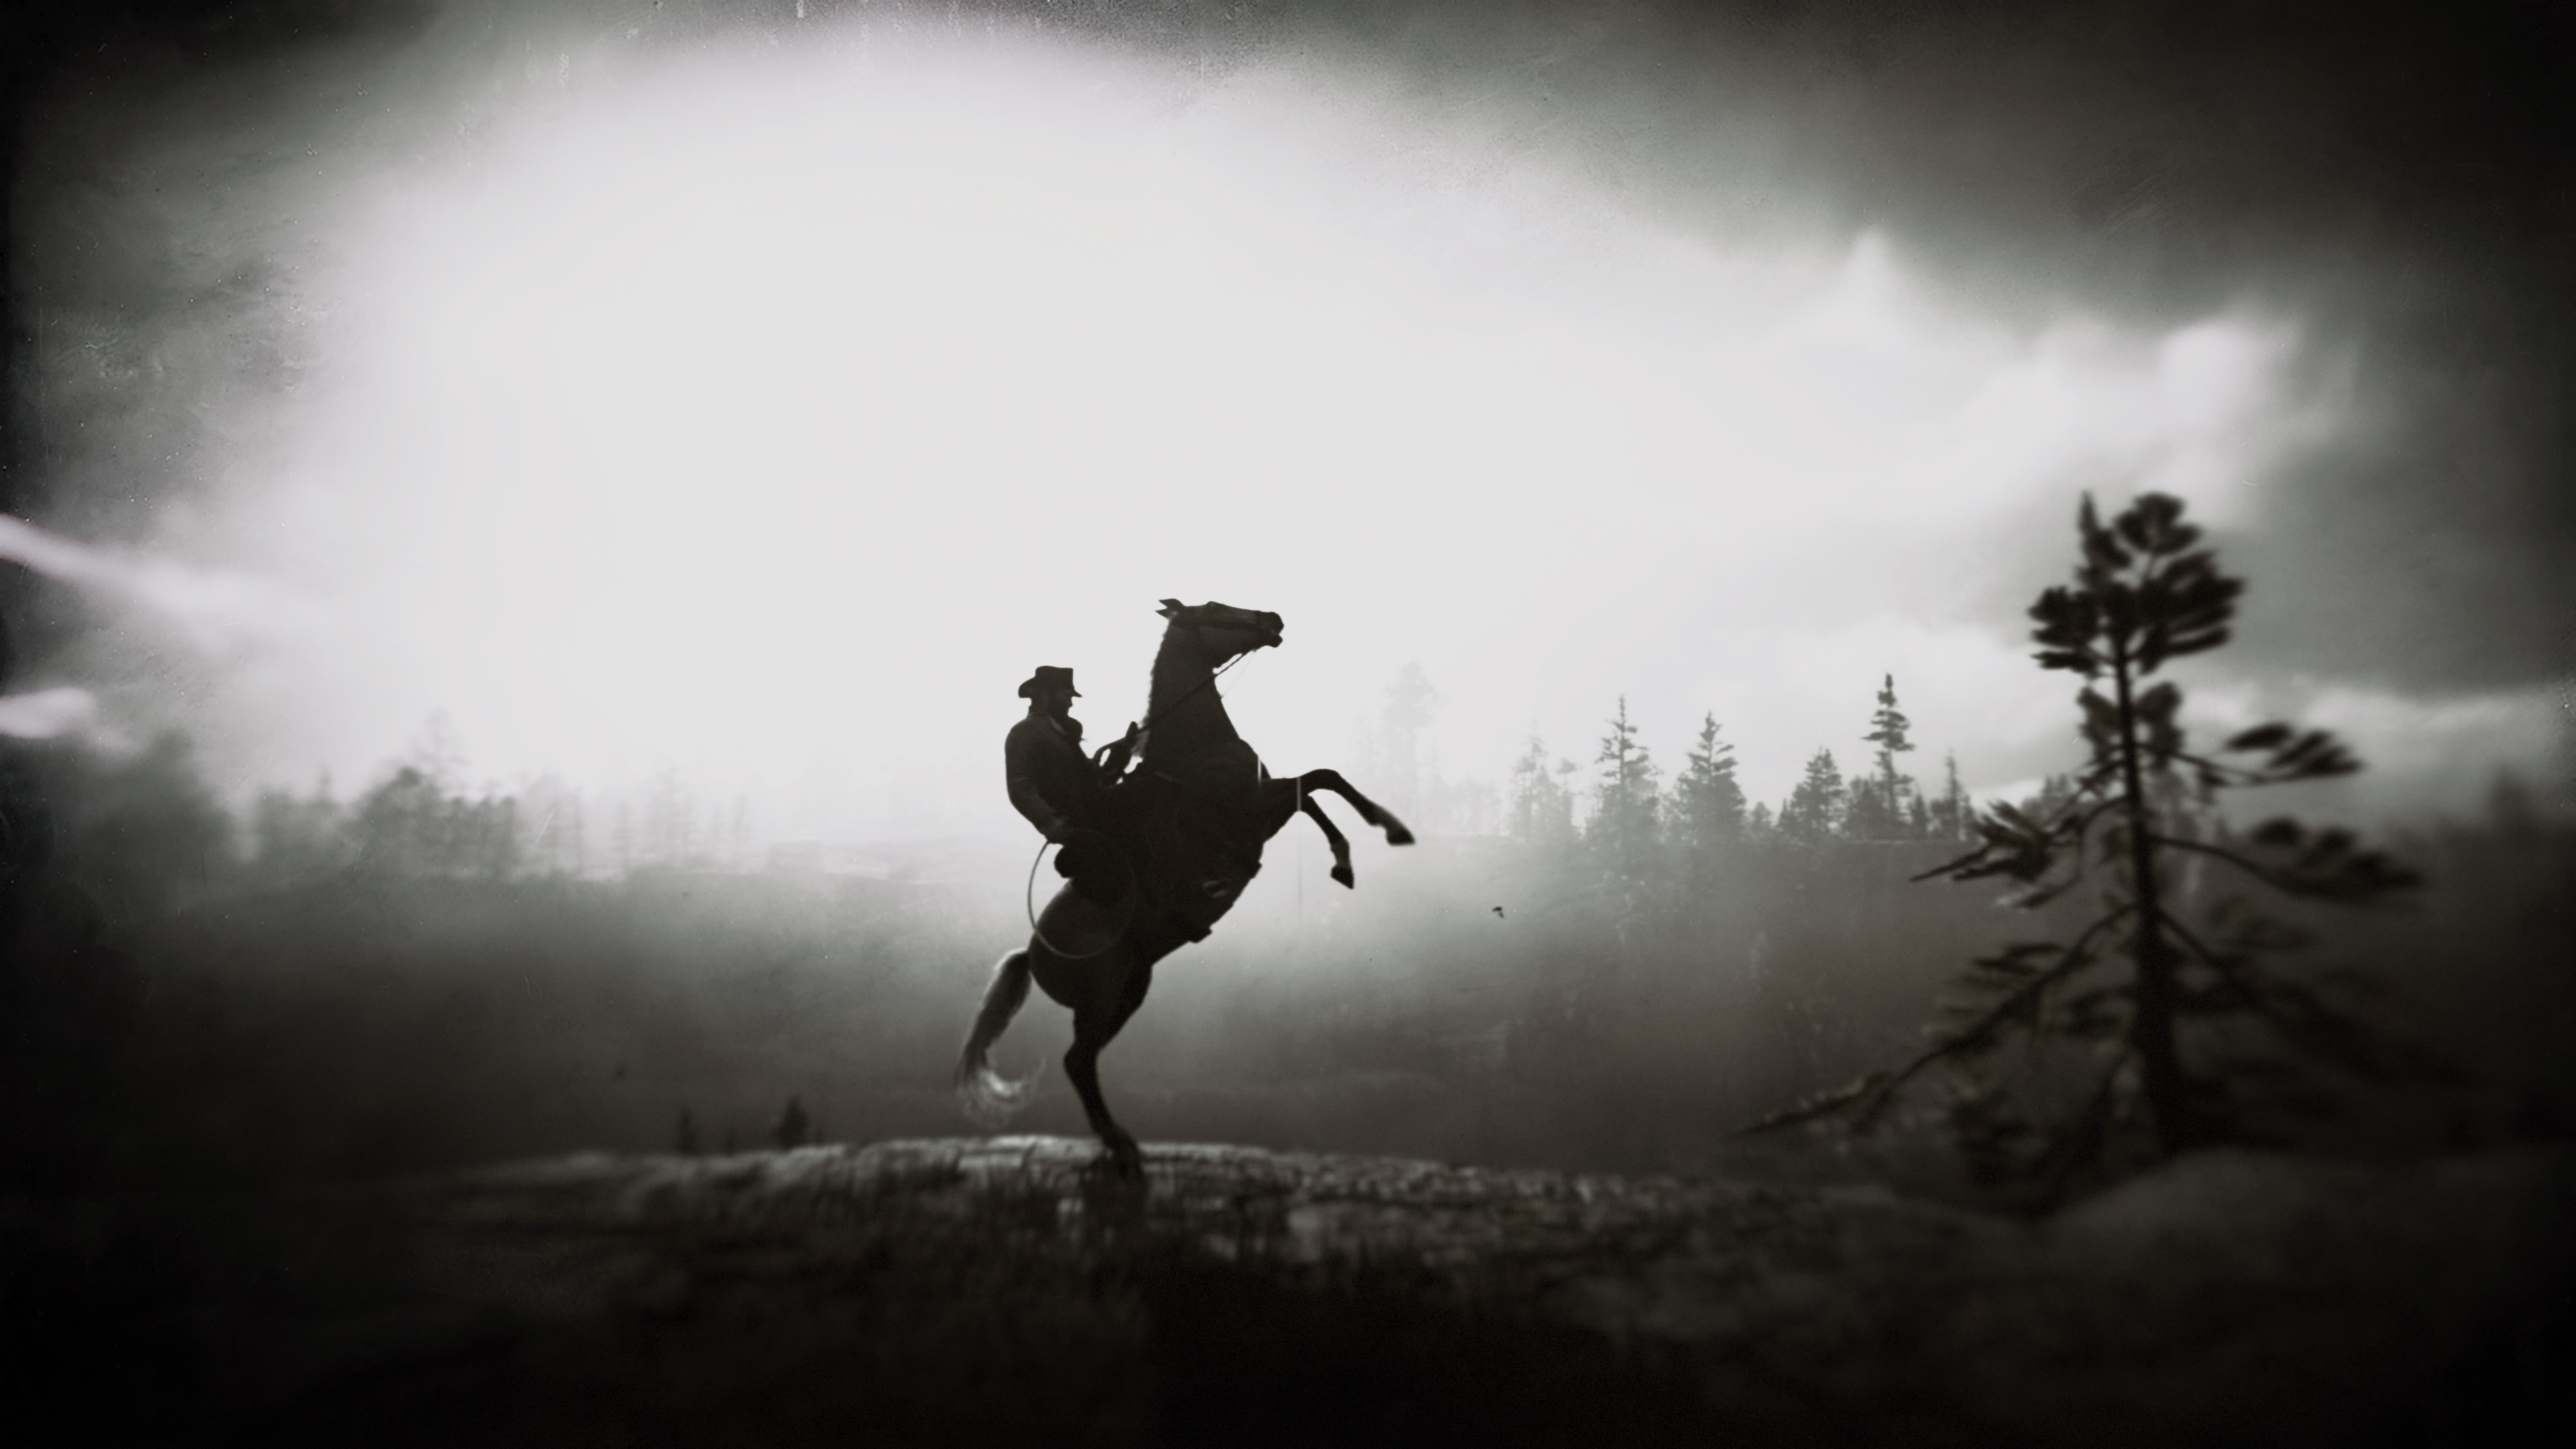 red dead redemption 2 phone wallpaper